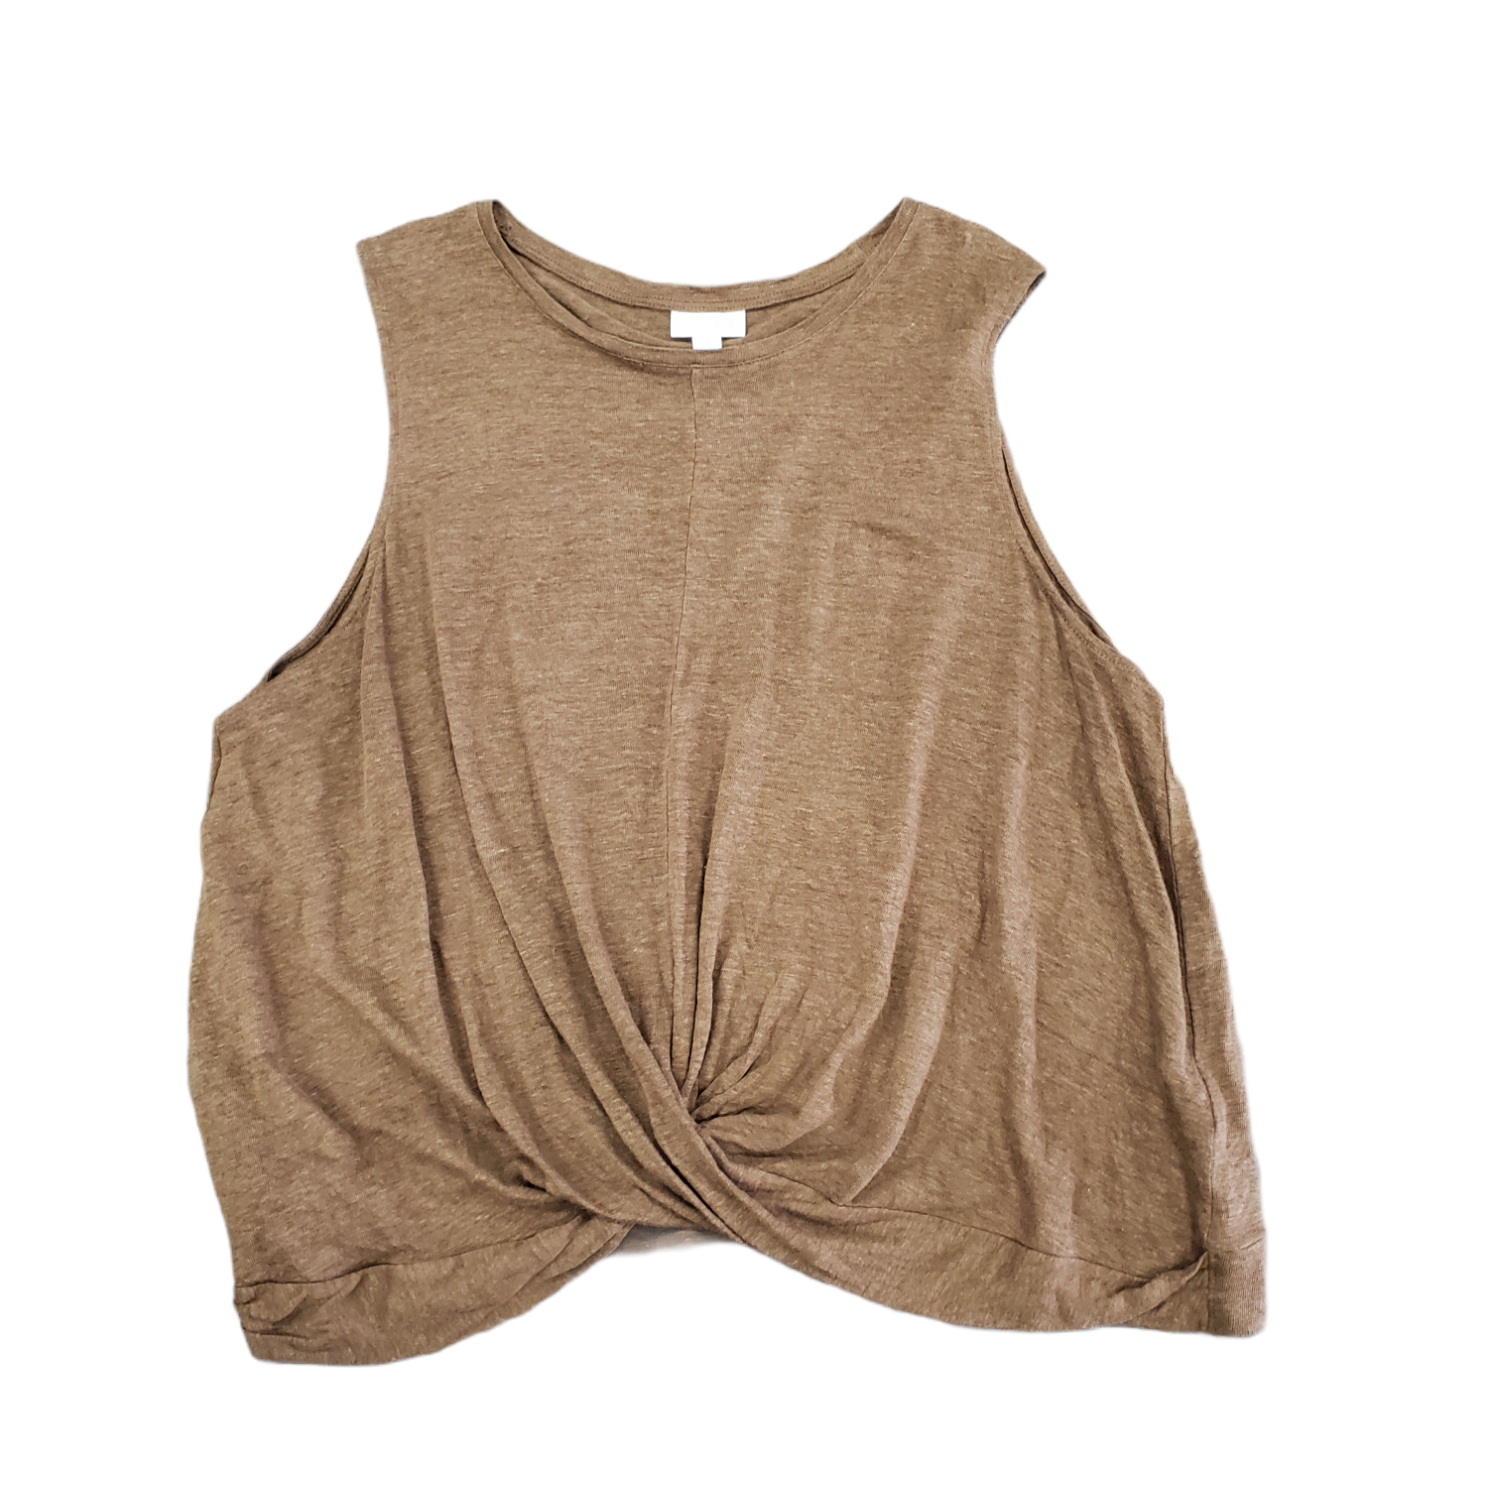 Primary Photo - BRAND: J JILL <BR>STYLE: TOP SLEEVELESS <BR>COLOR: BROWN <BR>SIZE: XL <BR>SKU: 196-196112-57023<BR><BR>100% LINEN